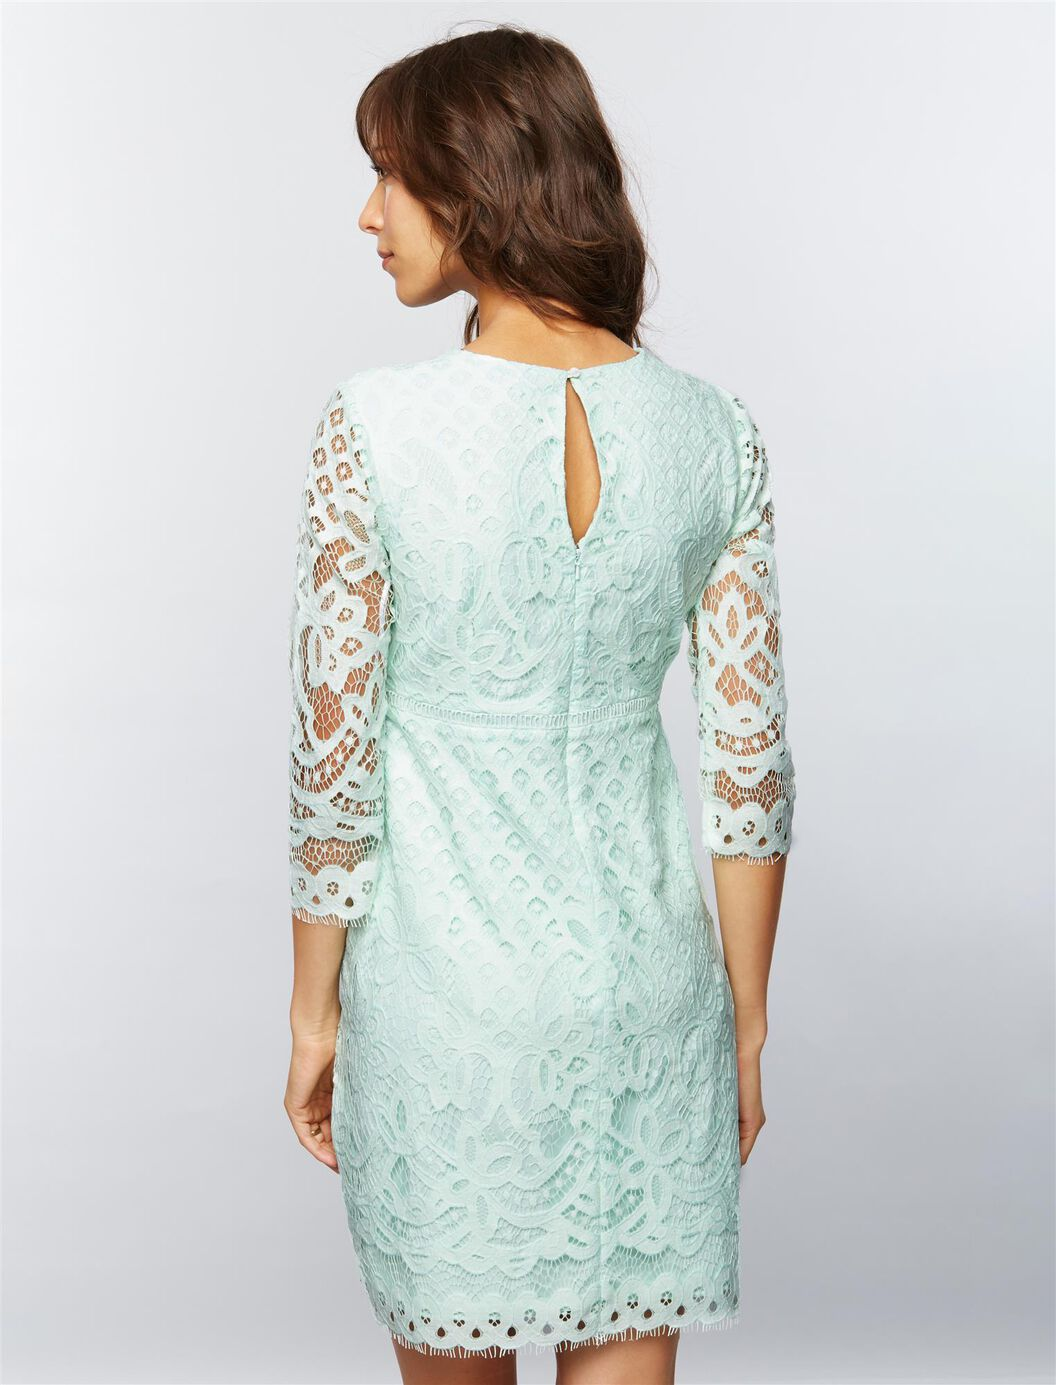 V neck lace maternity dress a pea in the pod maternity v neck lace maternity dress green ombrellifo Choice Image